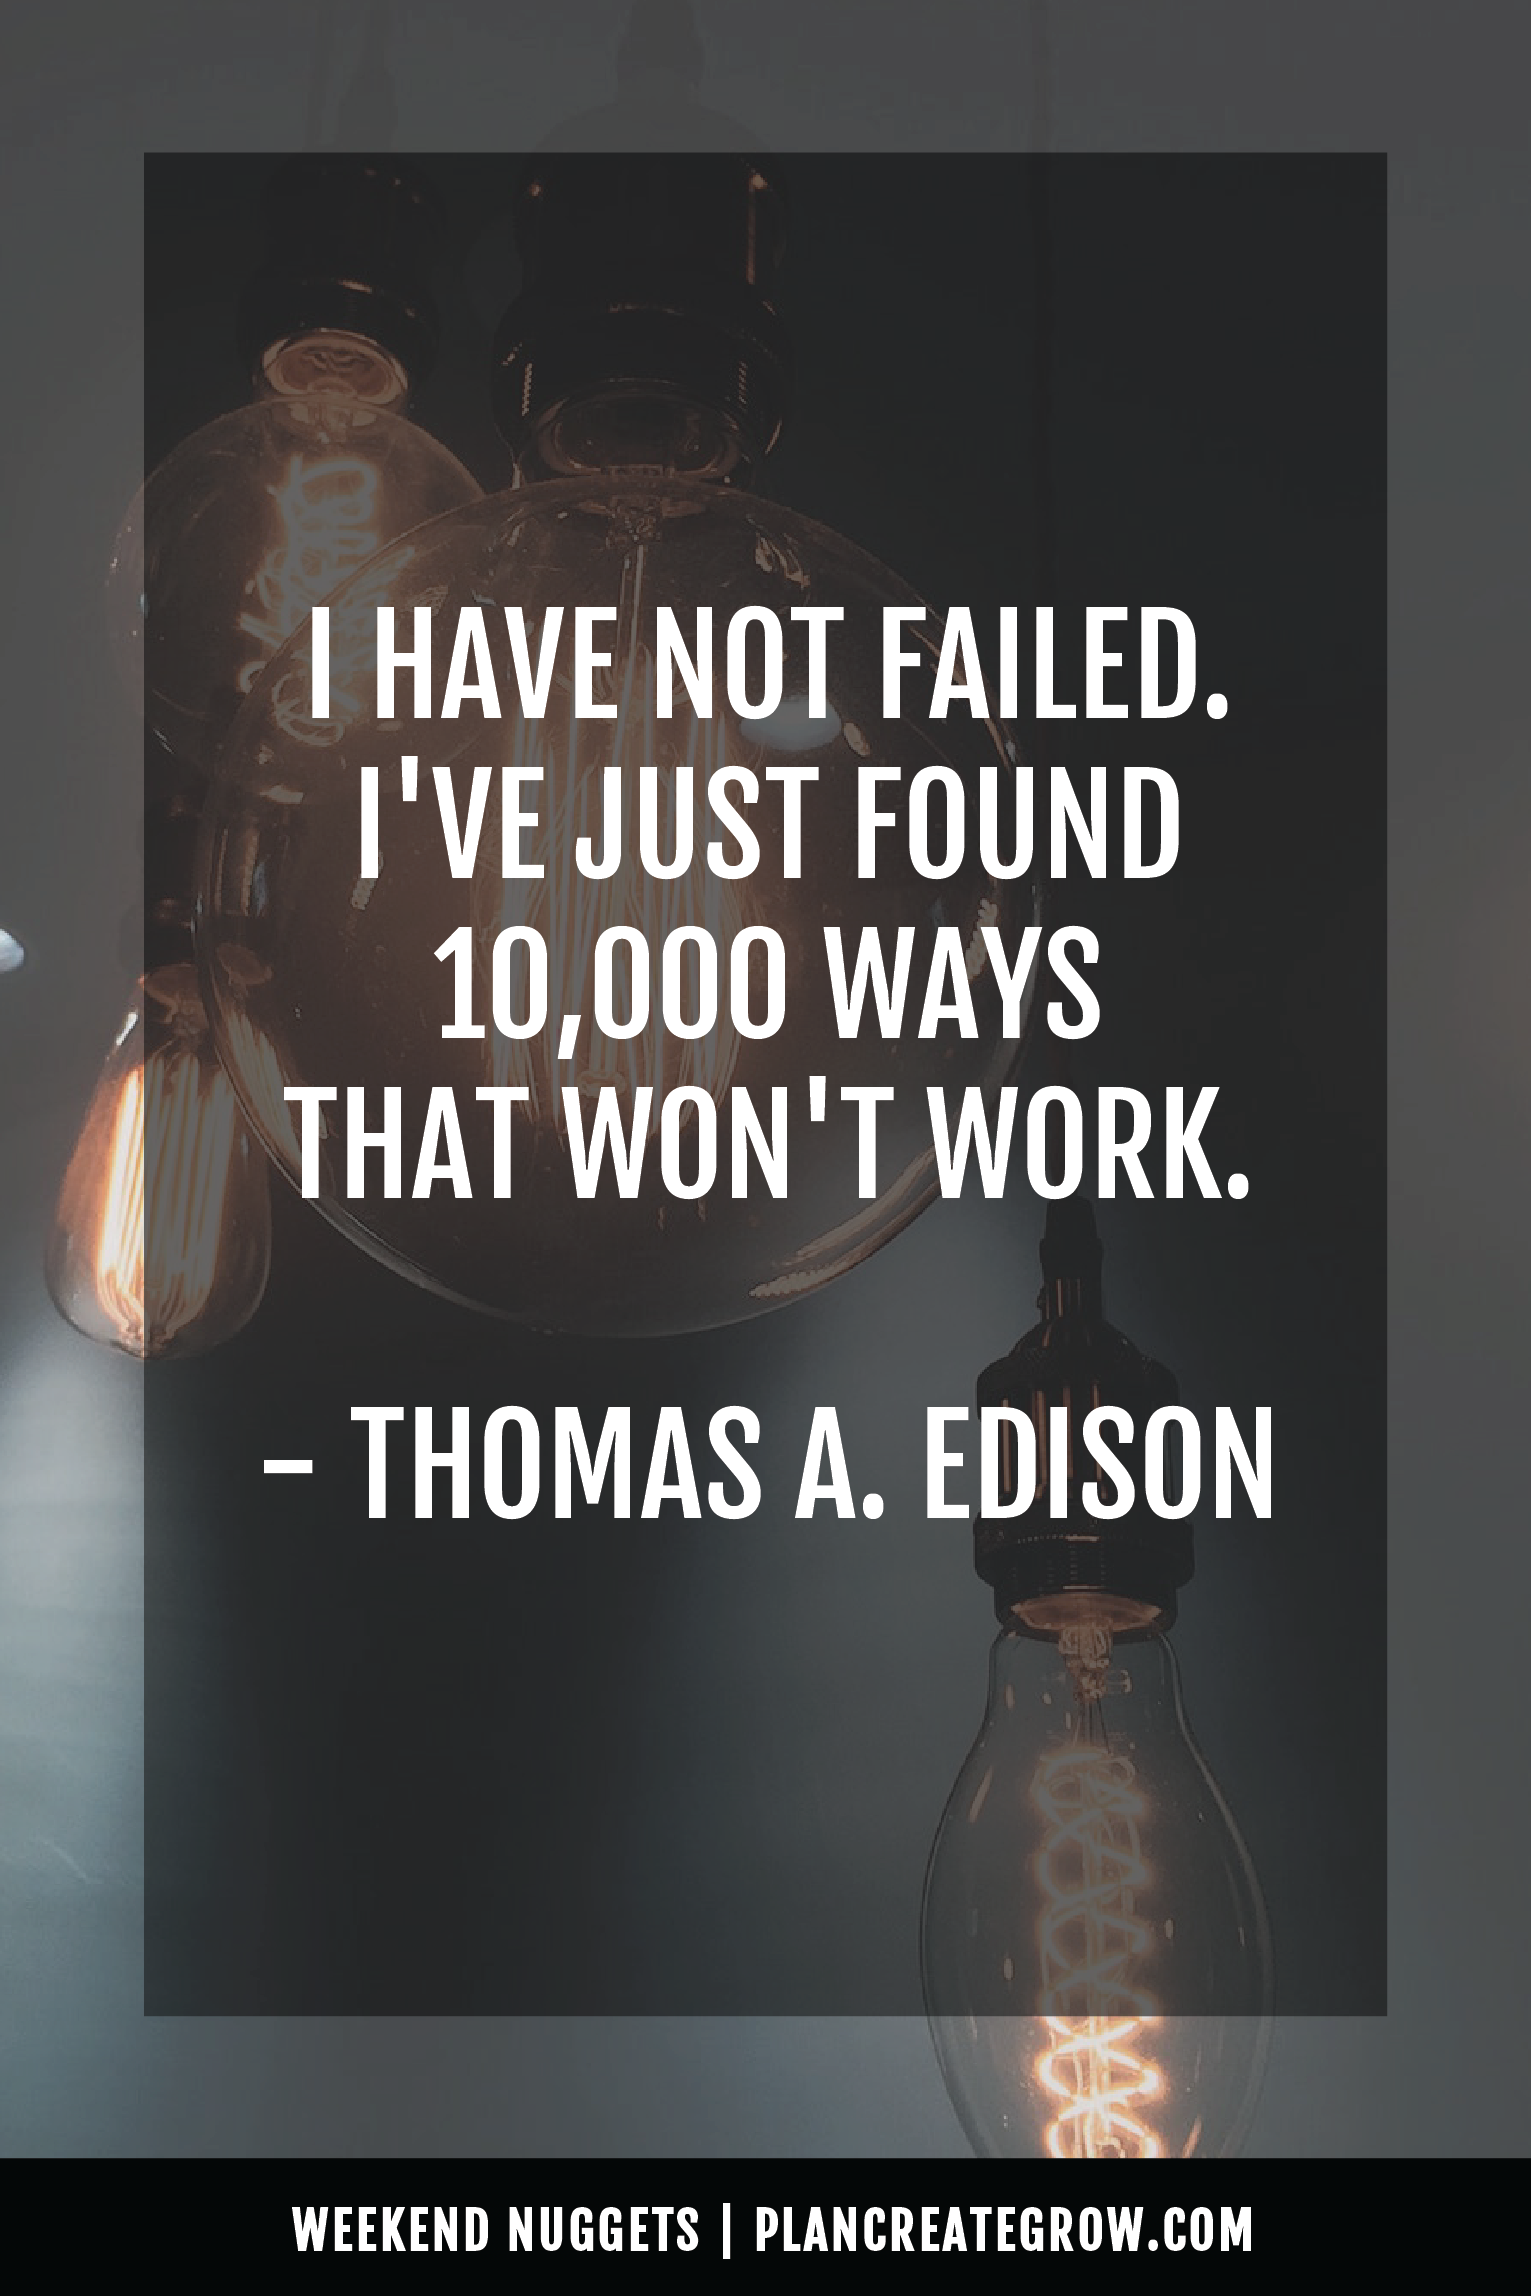 """""""I have not failed. I've just found 10,000 ways that won't work."""" - Thomas A. Edison  This image forms part of a series called Weekend Nuggets - a collection of quotes and ideas curated to delight and inspire - shared each weekend. For more, visit plancreategrow.com/weekend-nuggets."""